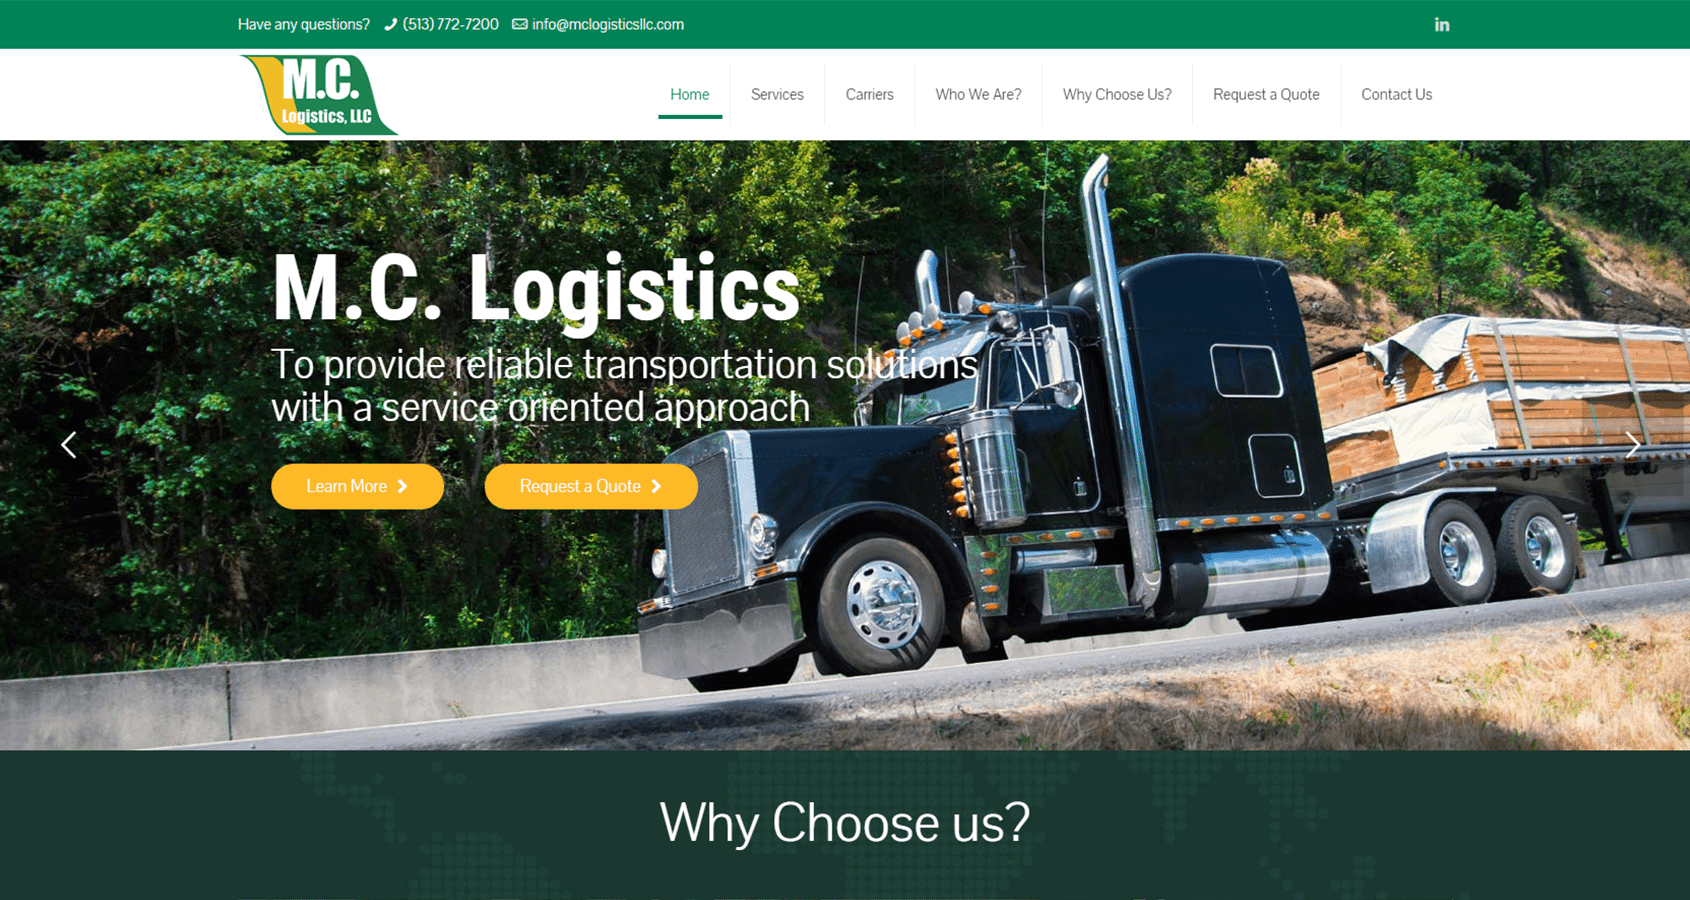 MC Logistics Website Screencap